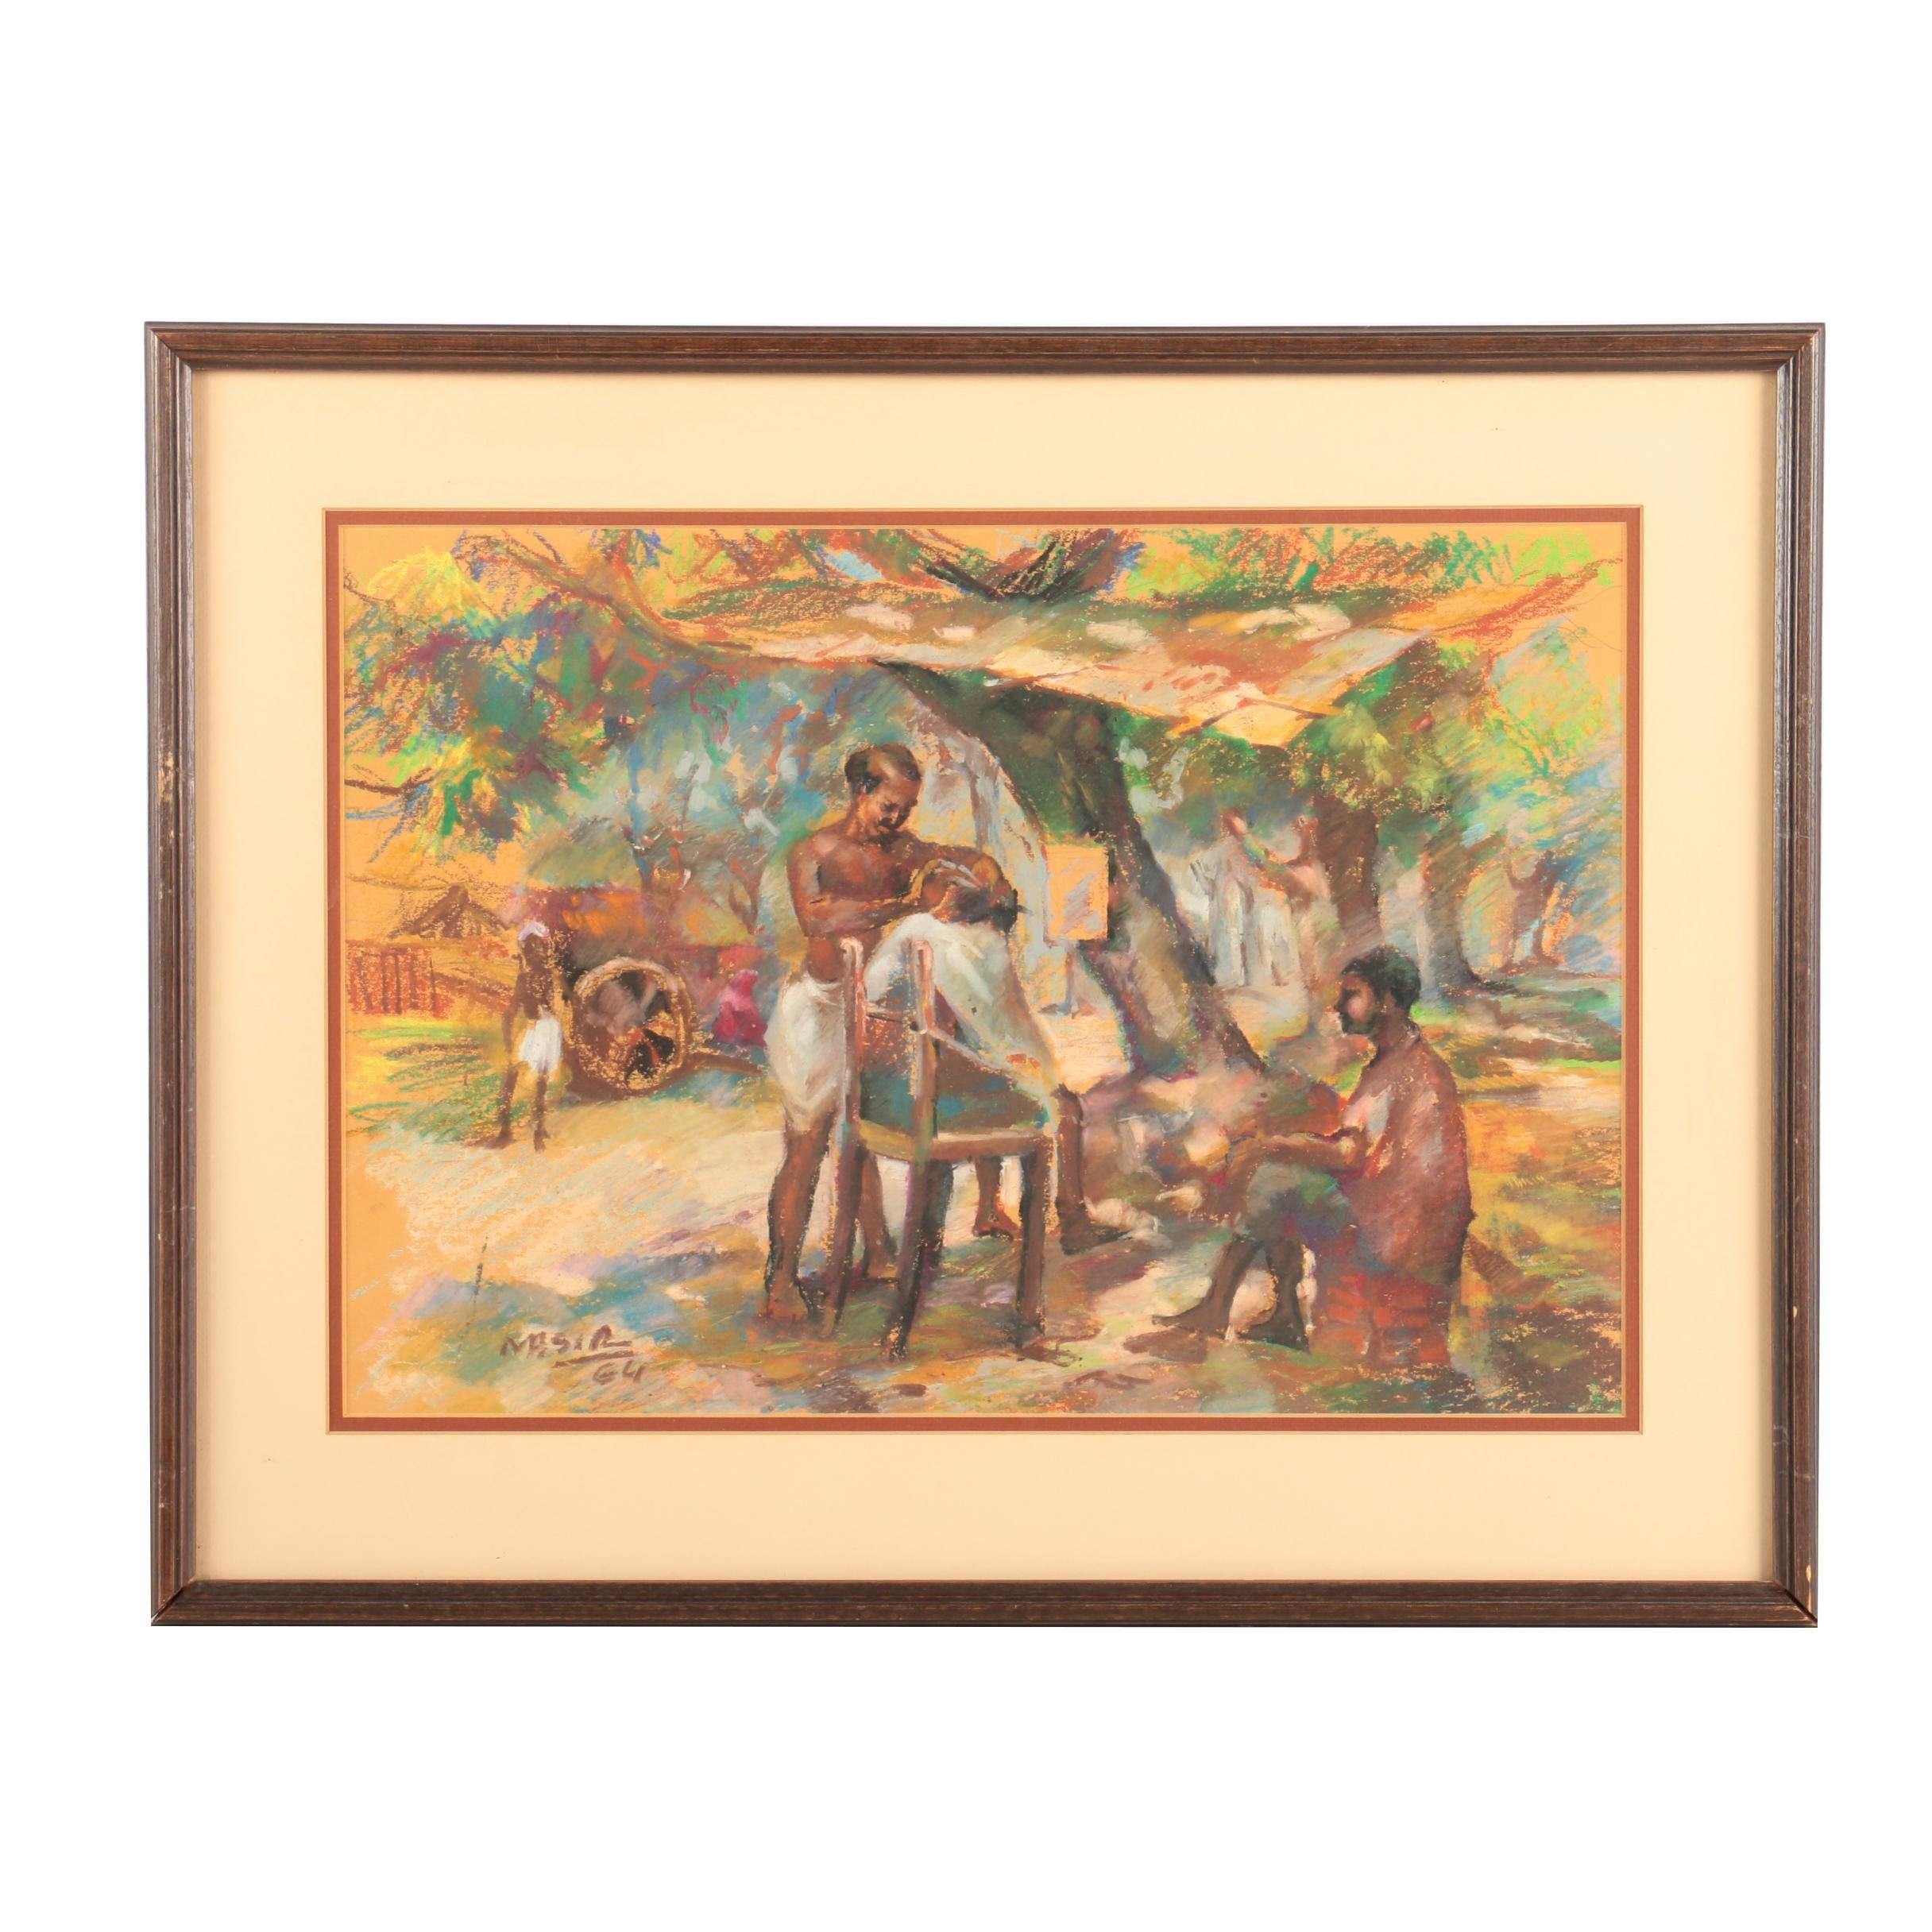 Nasir 1964 Pastel Drawing on Paper of a Barber Working Under a Canopy of Trees